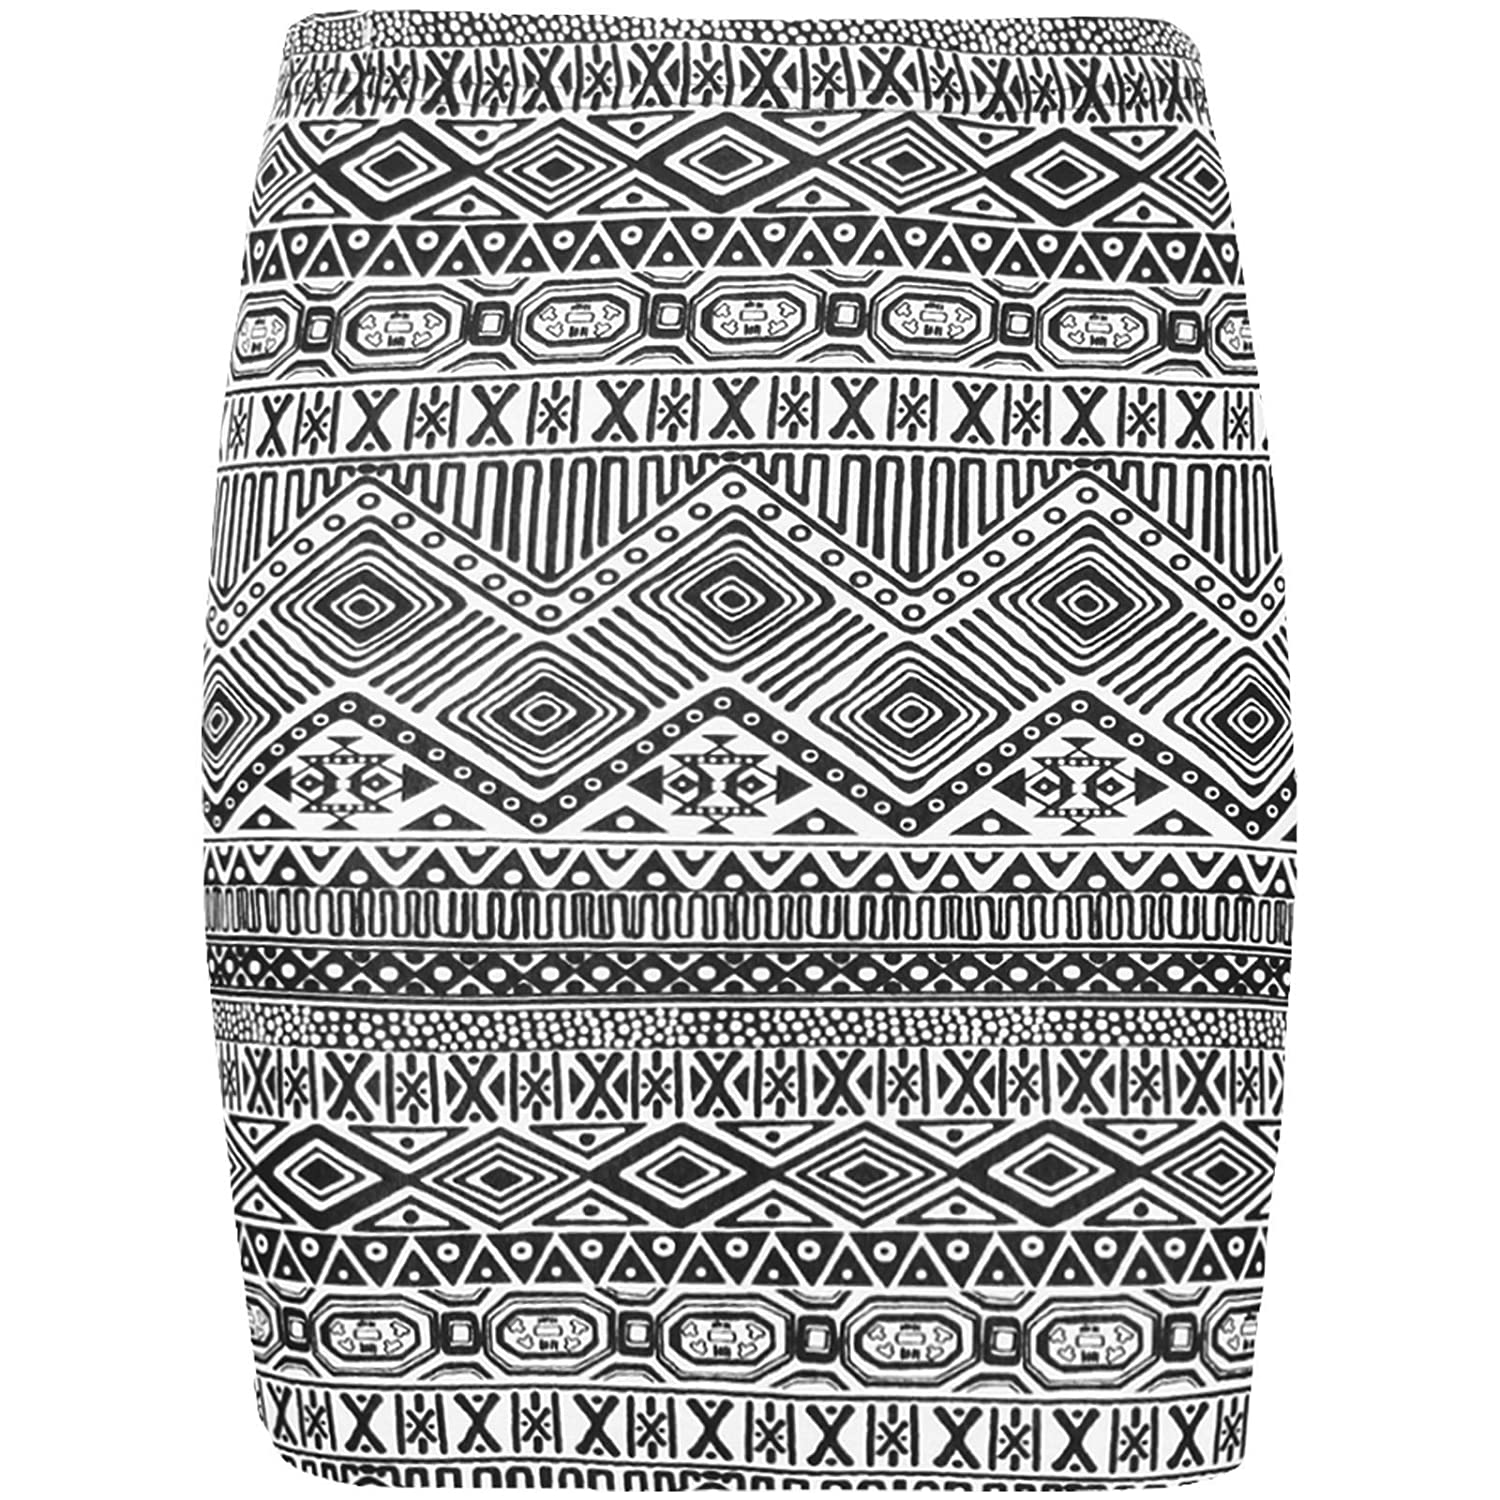 New Womens Printed Ladies Stretch Elasticated Jersey Bodycon Short Mini Skirt 8-22